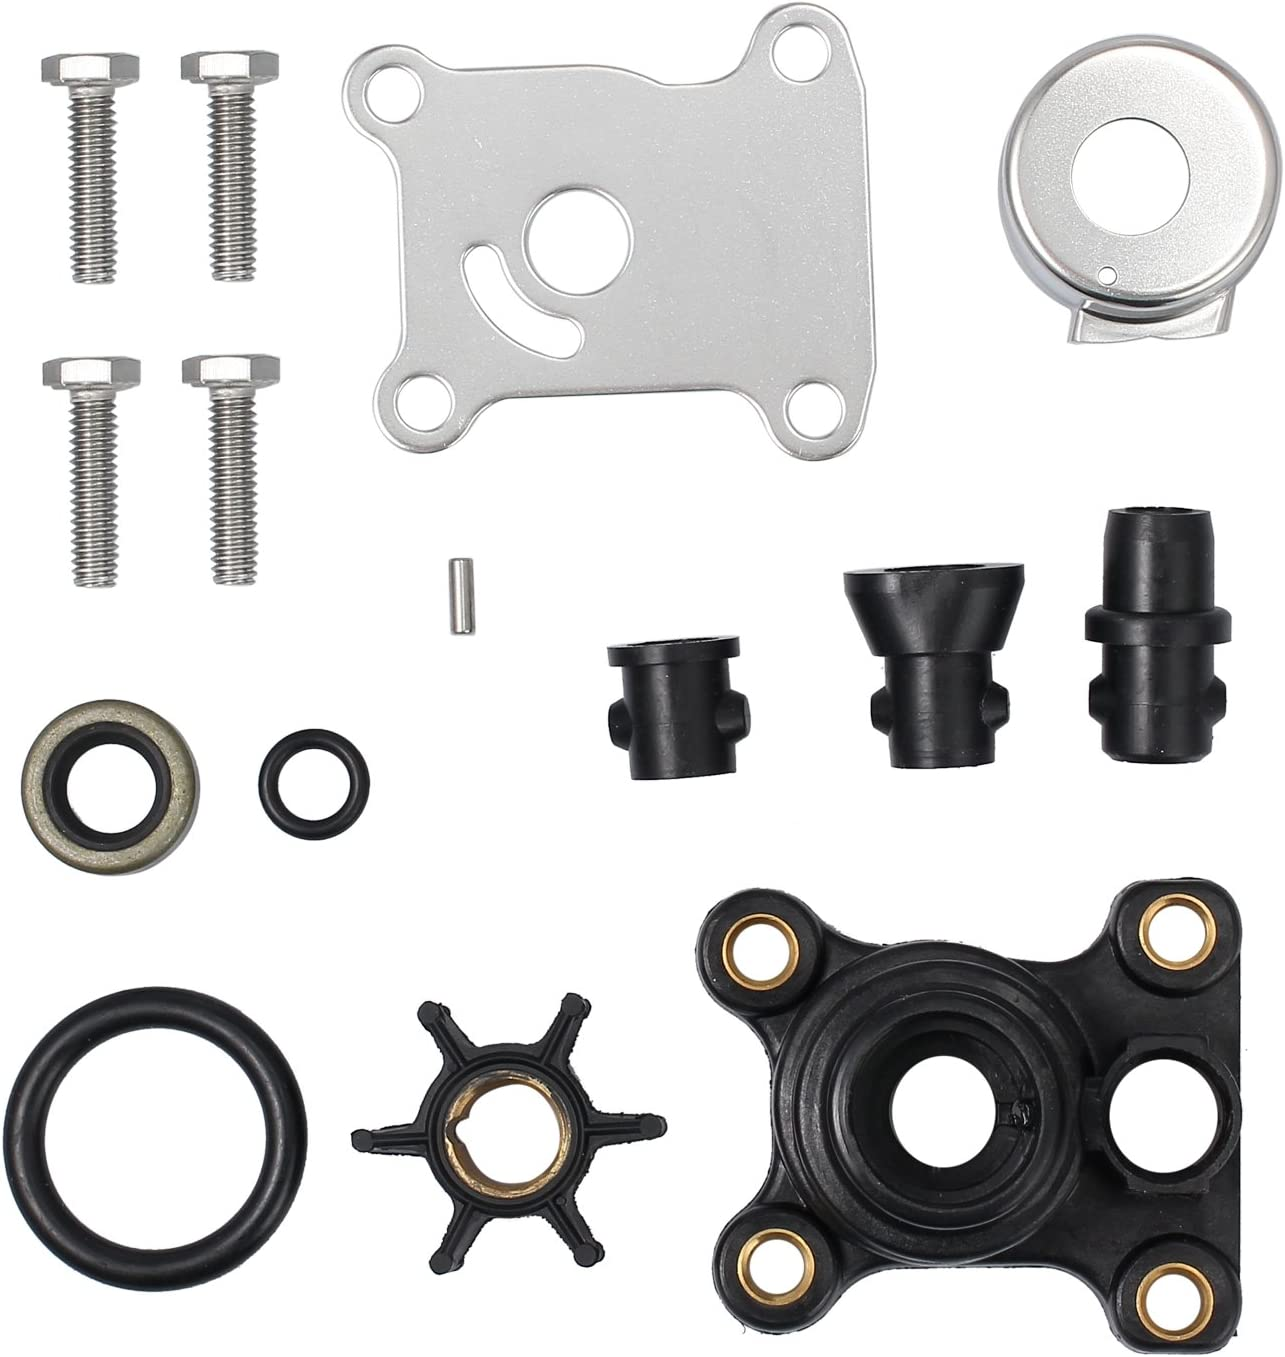 AUTOUTLET Johnson Evinrude Water Pump New arrival We OFFer at cheap prices 394711 Impeller Kit 18-332